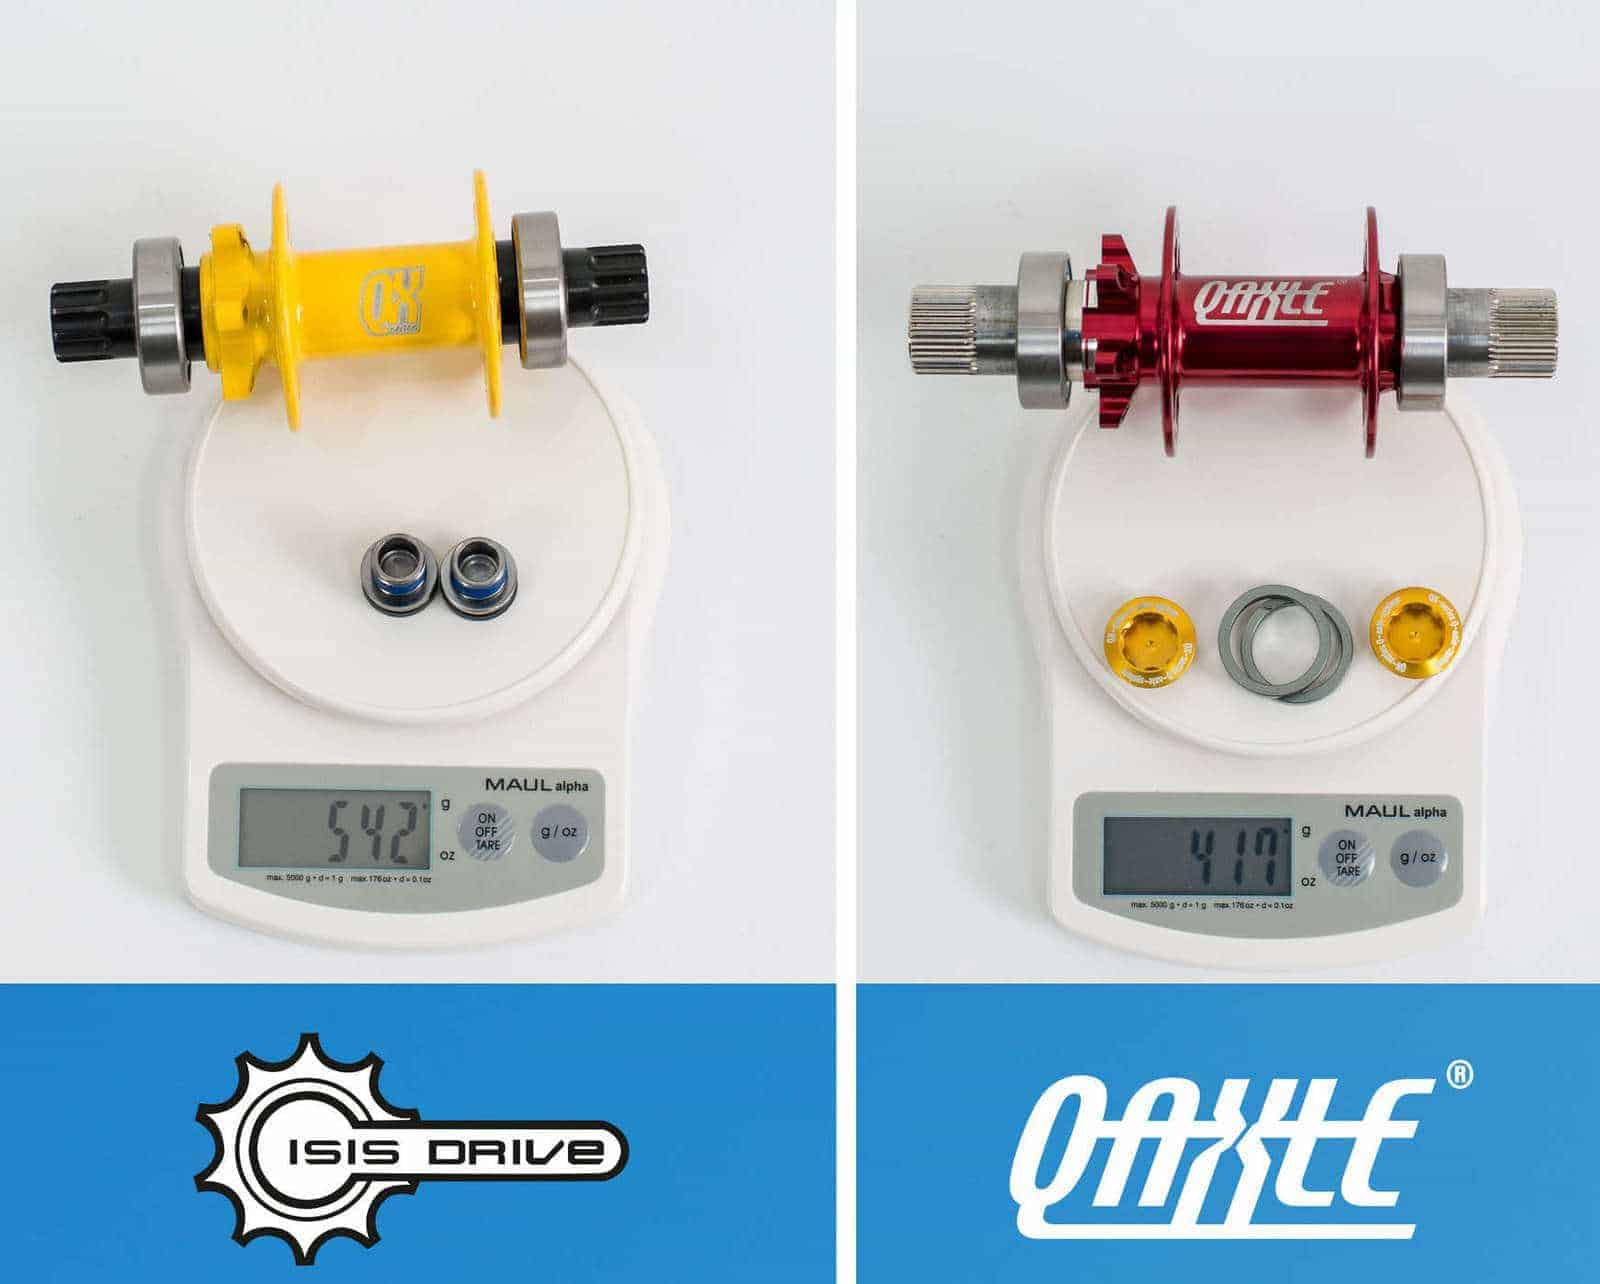 Weight comparison between Q-Axle ISIS